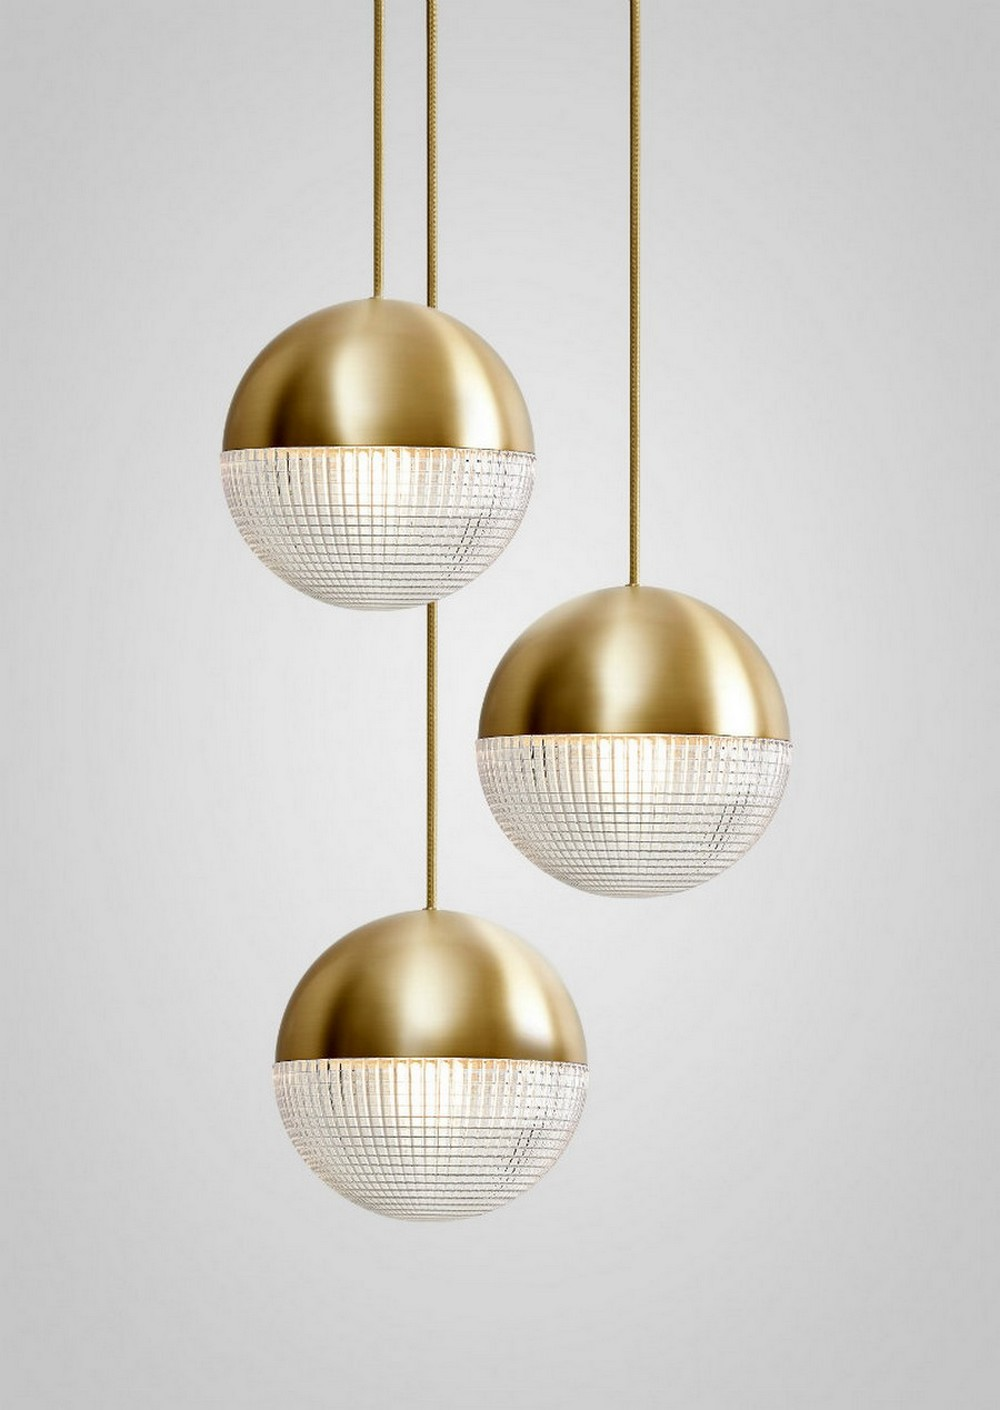 Lee Broom's Stunning Lighting Collection Will Be At NYCxDesign 2019 lee broom Lee Broom's Stunning Lighting Collection Will Be At NYCxDesign 2019 Lee Brooms Stunning Lighting Collection Will Be At NYCxDesign 2019 3